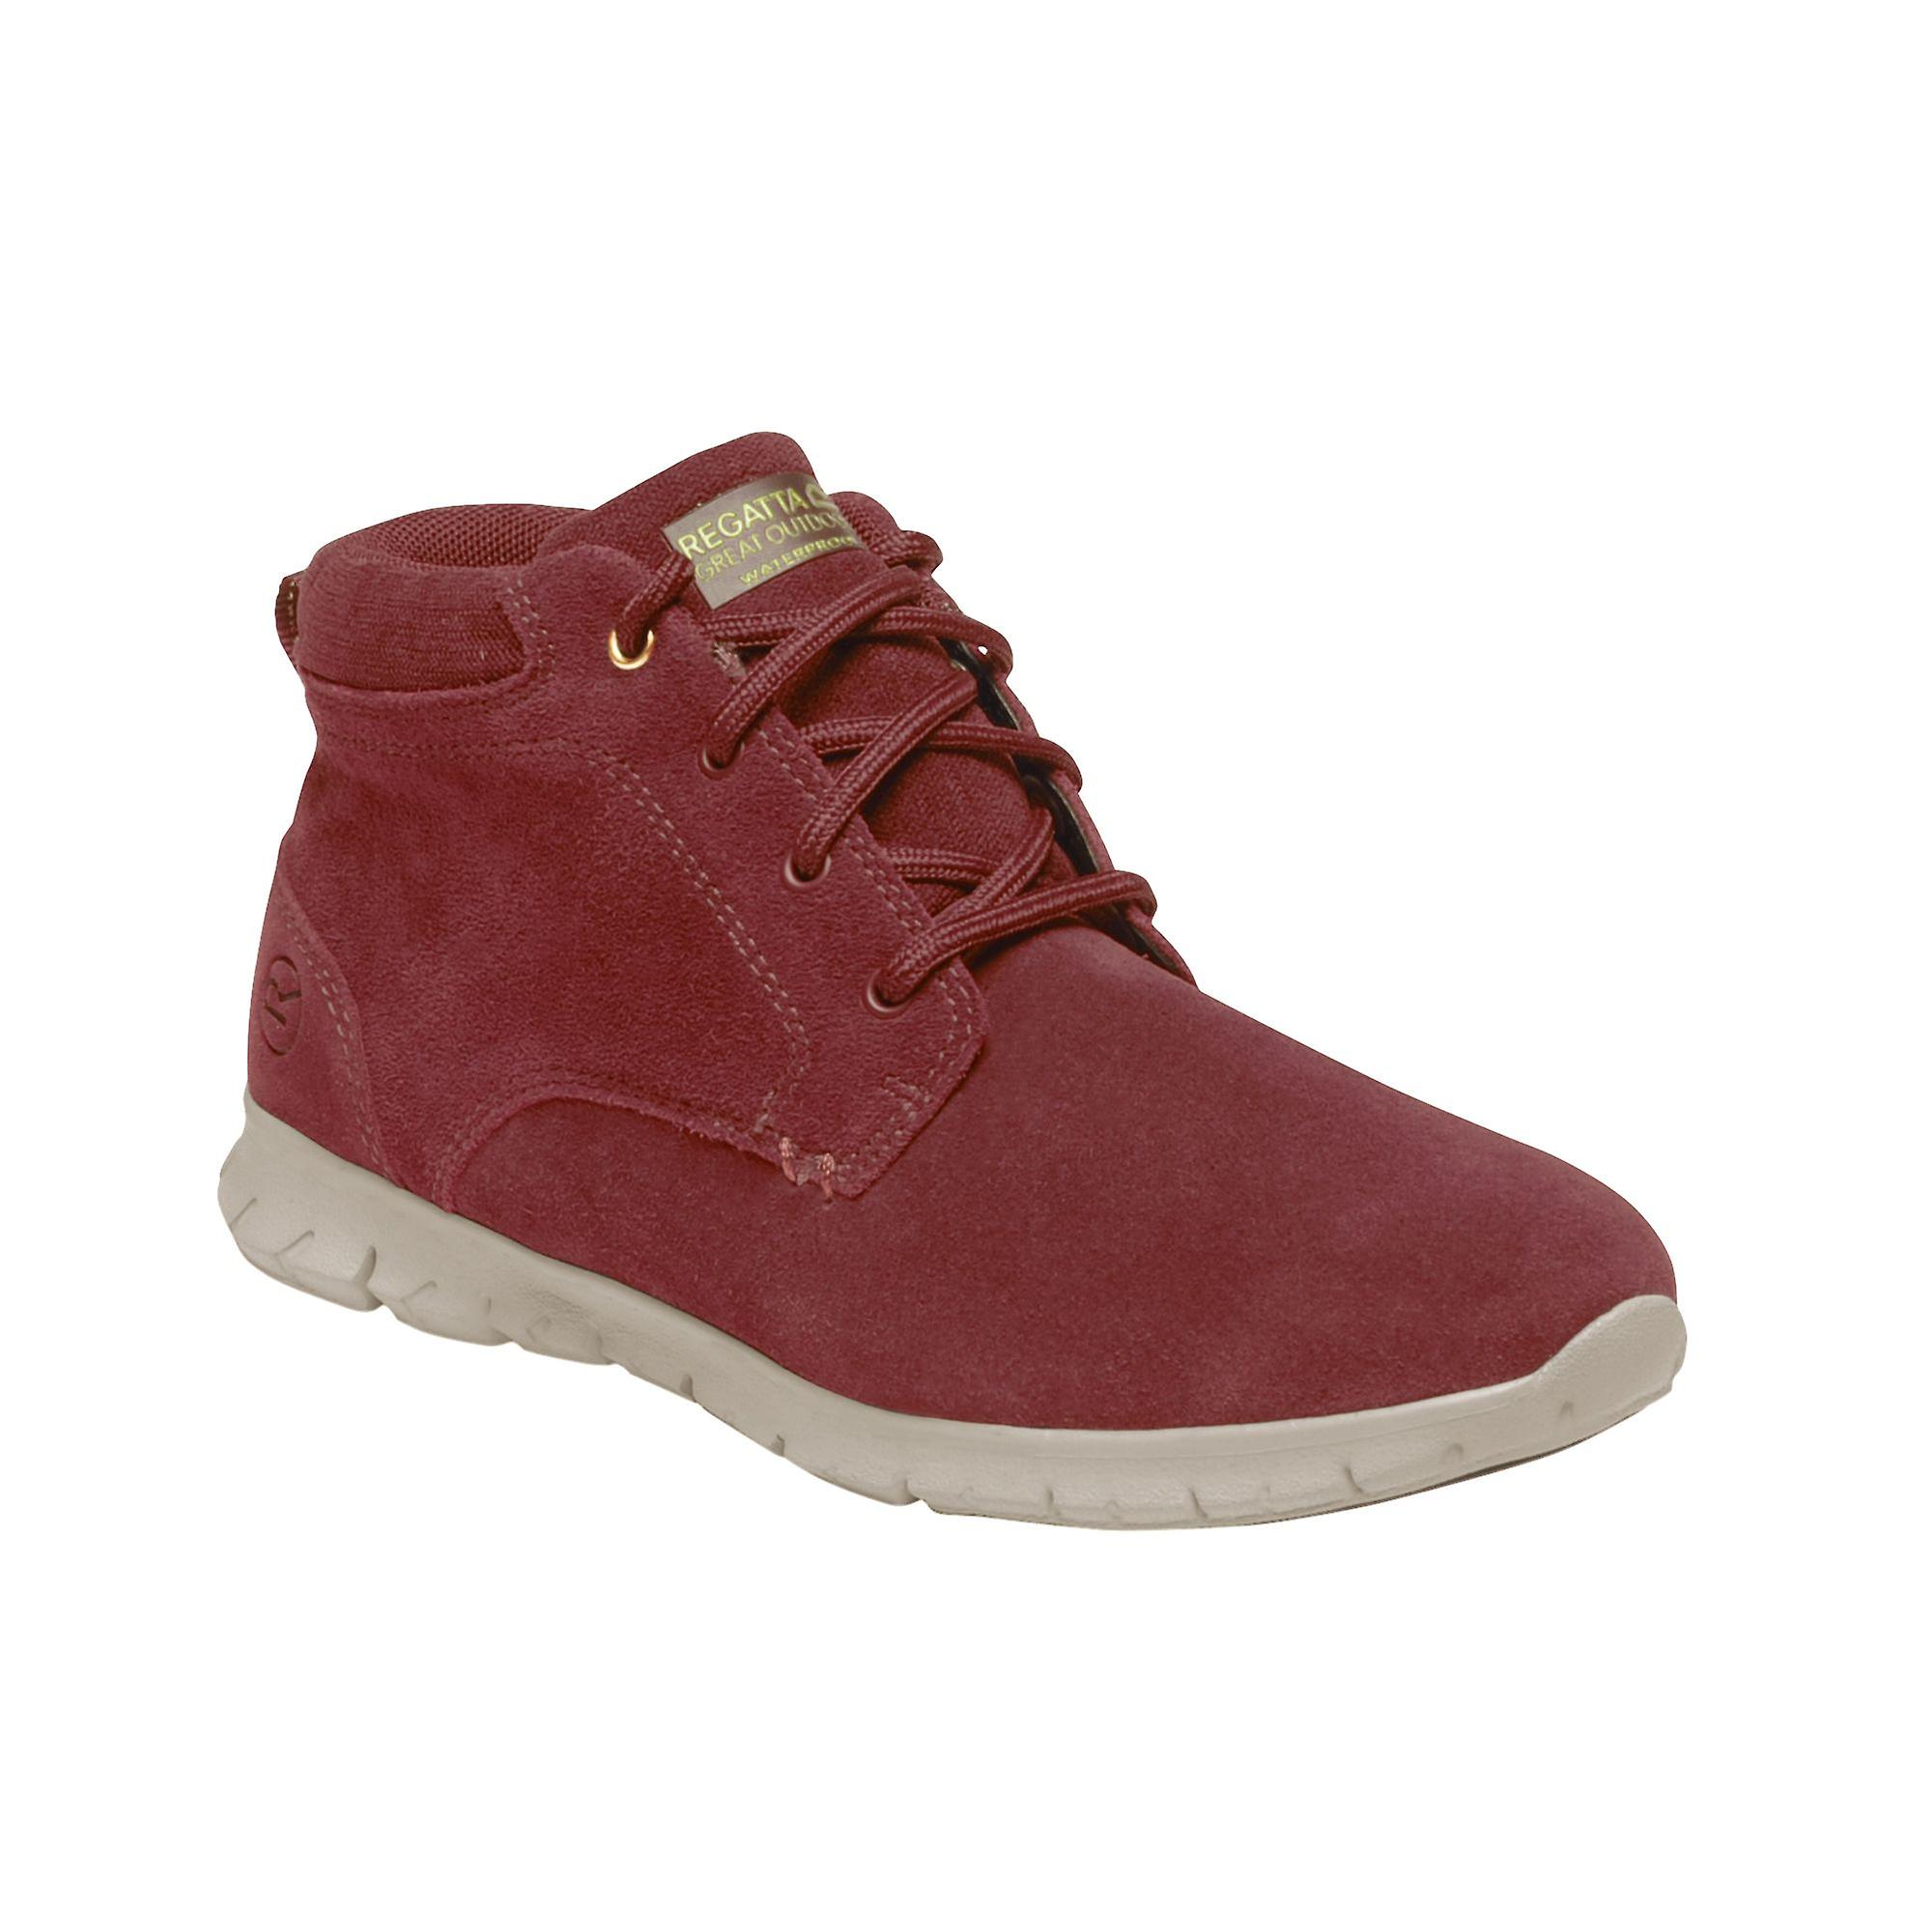 Regatta Great Outdoors Womens/ladies Marine Suede Leather Thermo Ankle Boots (en)